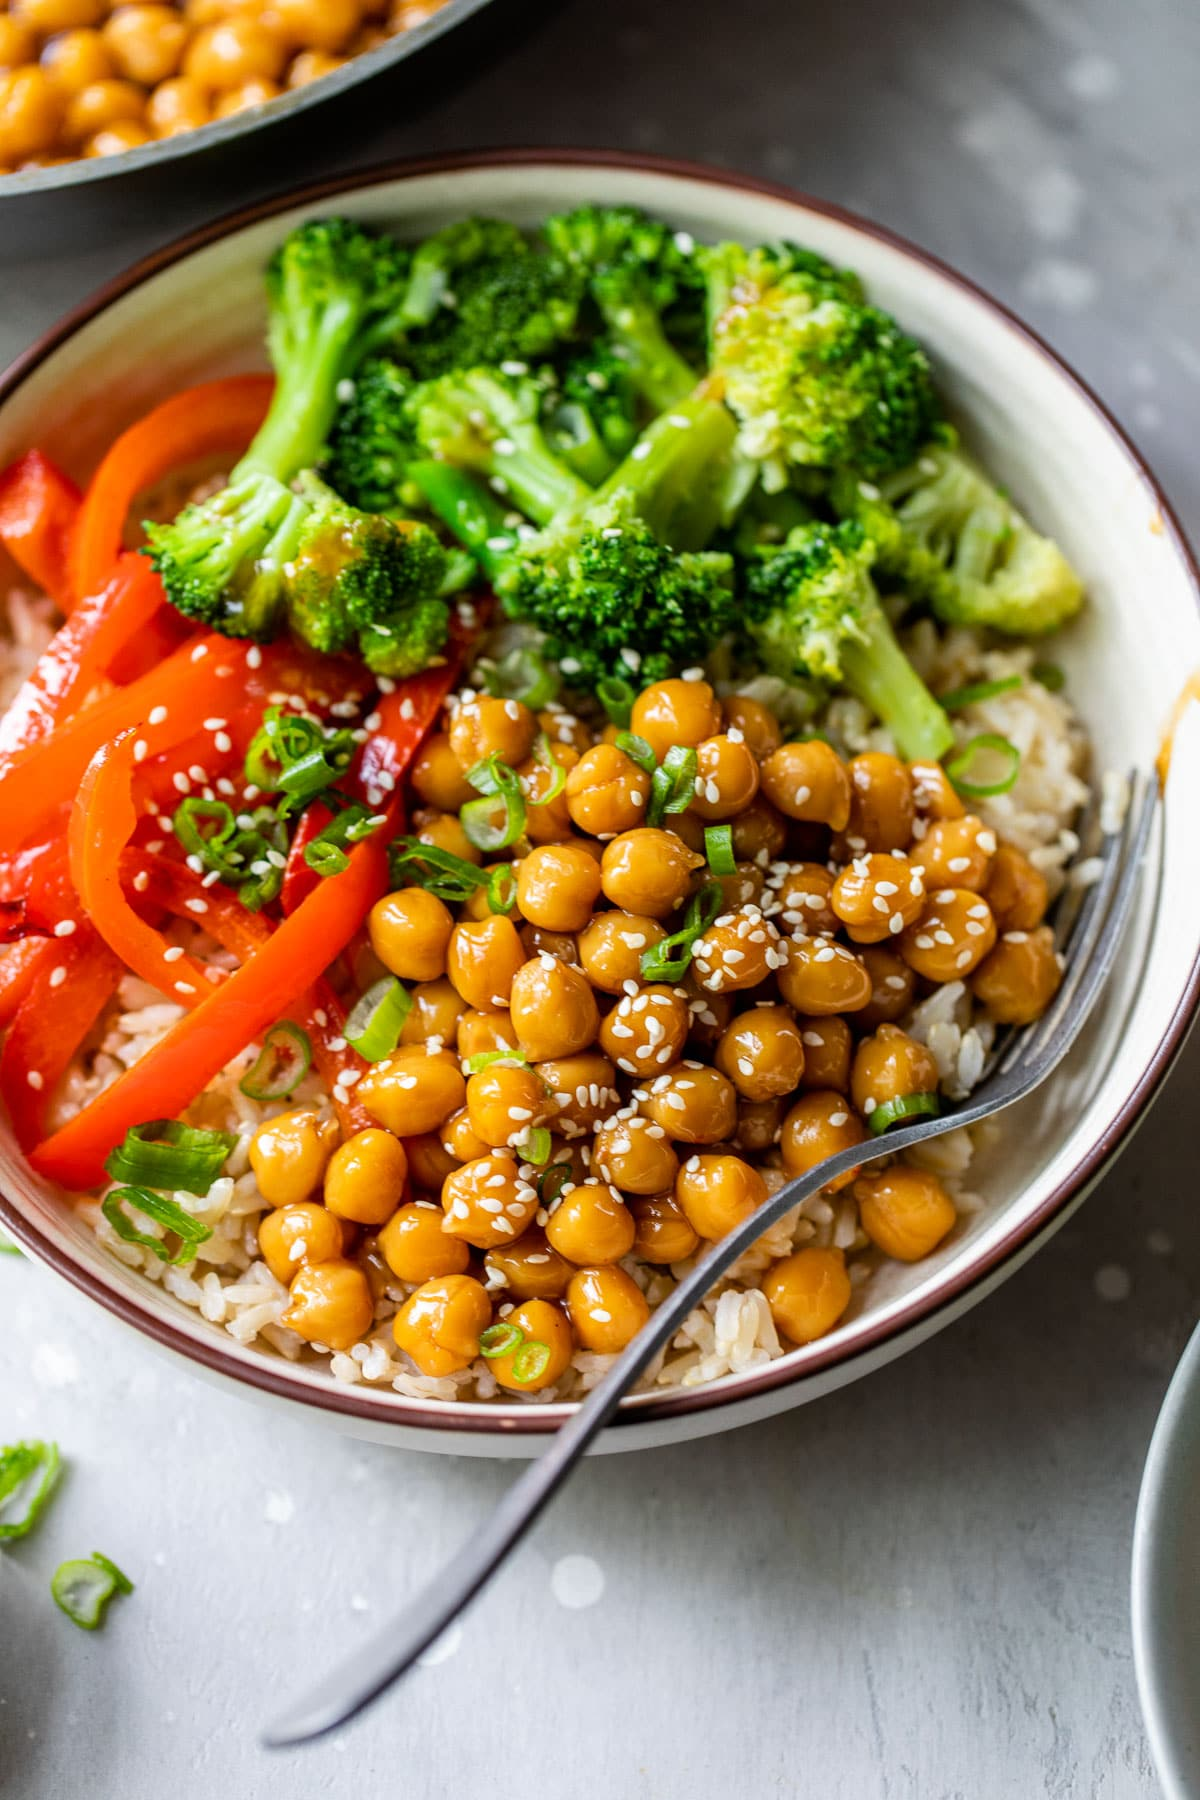 bowl filled with rice, broccoli, red bell pepper, and marinated chickpeas